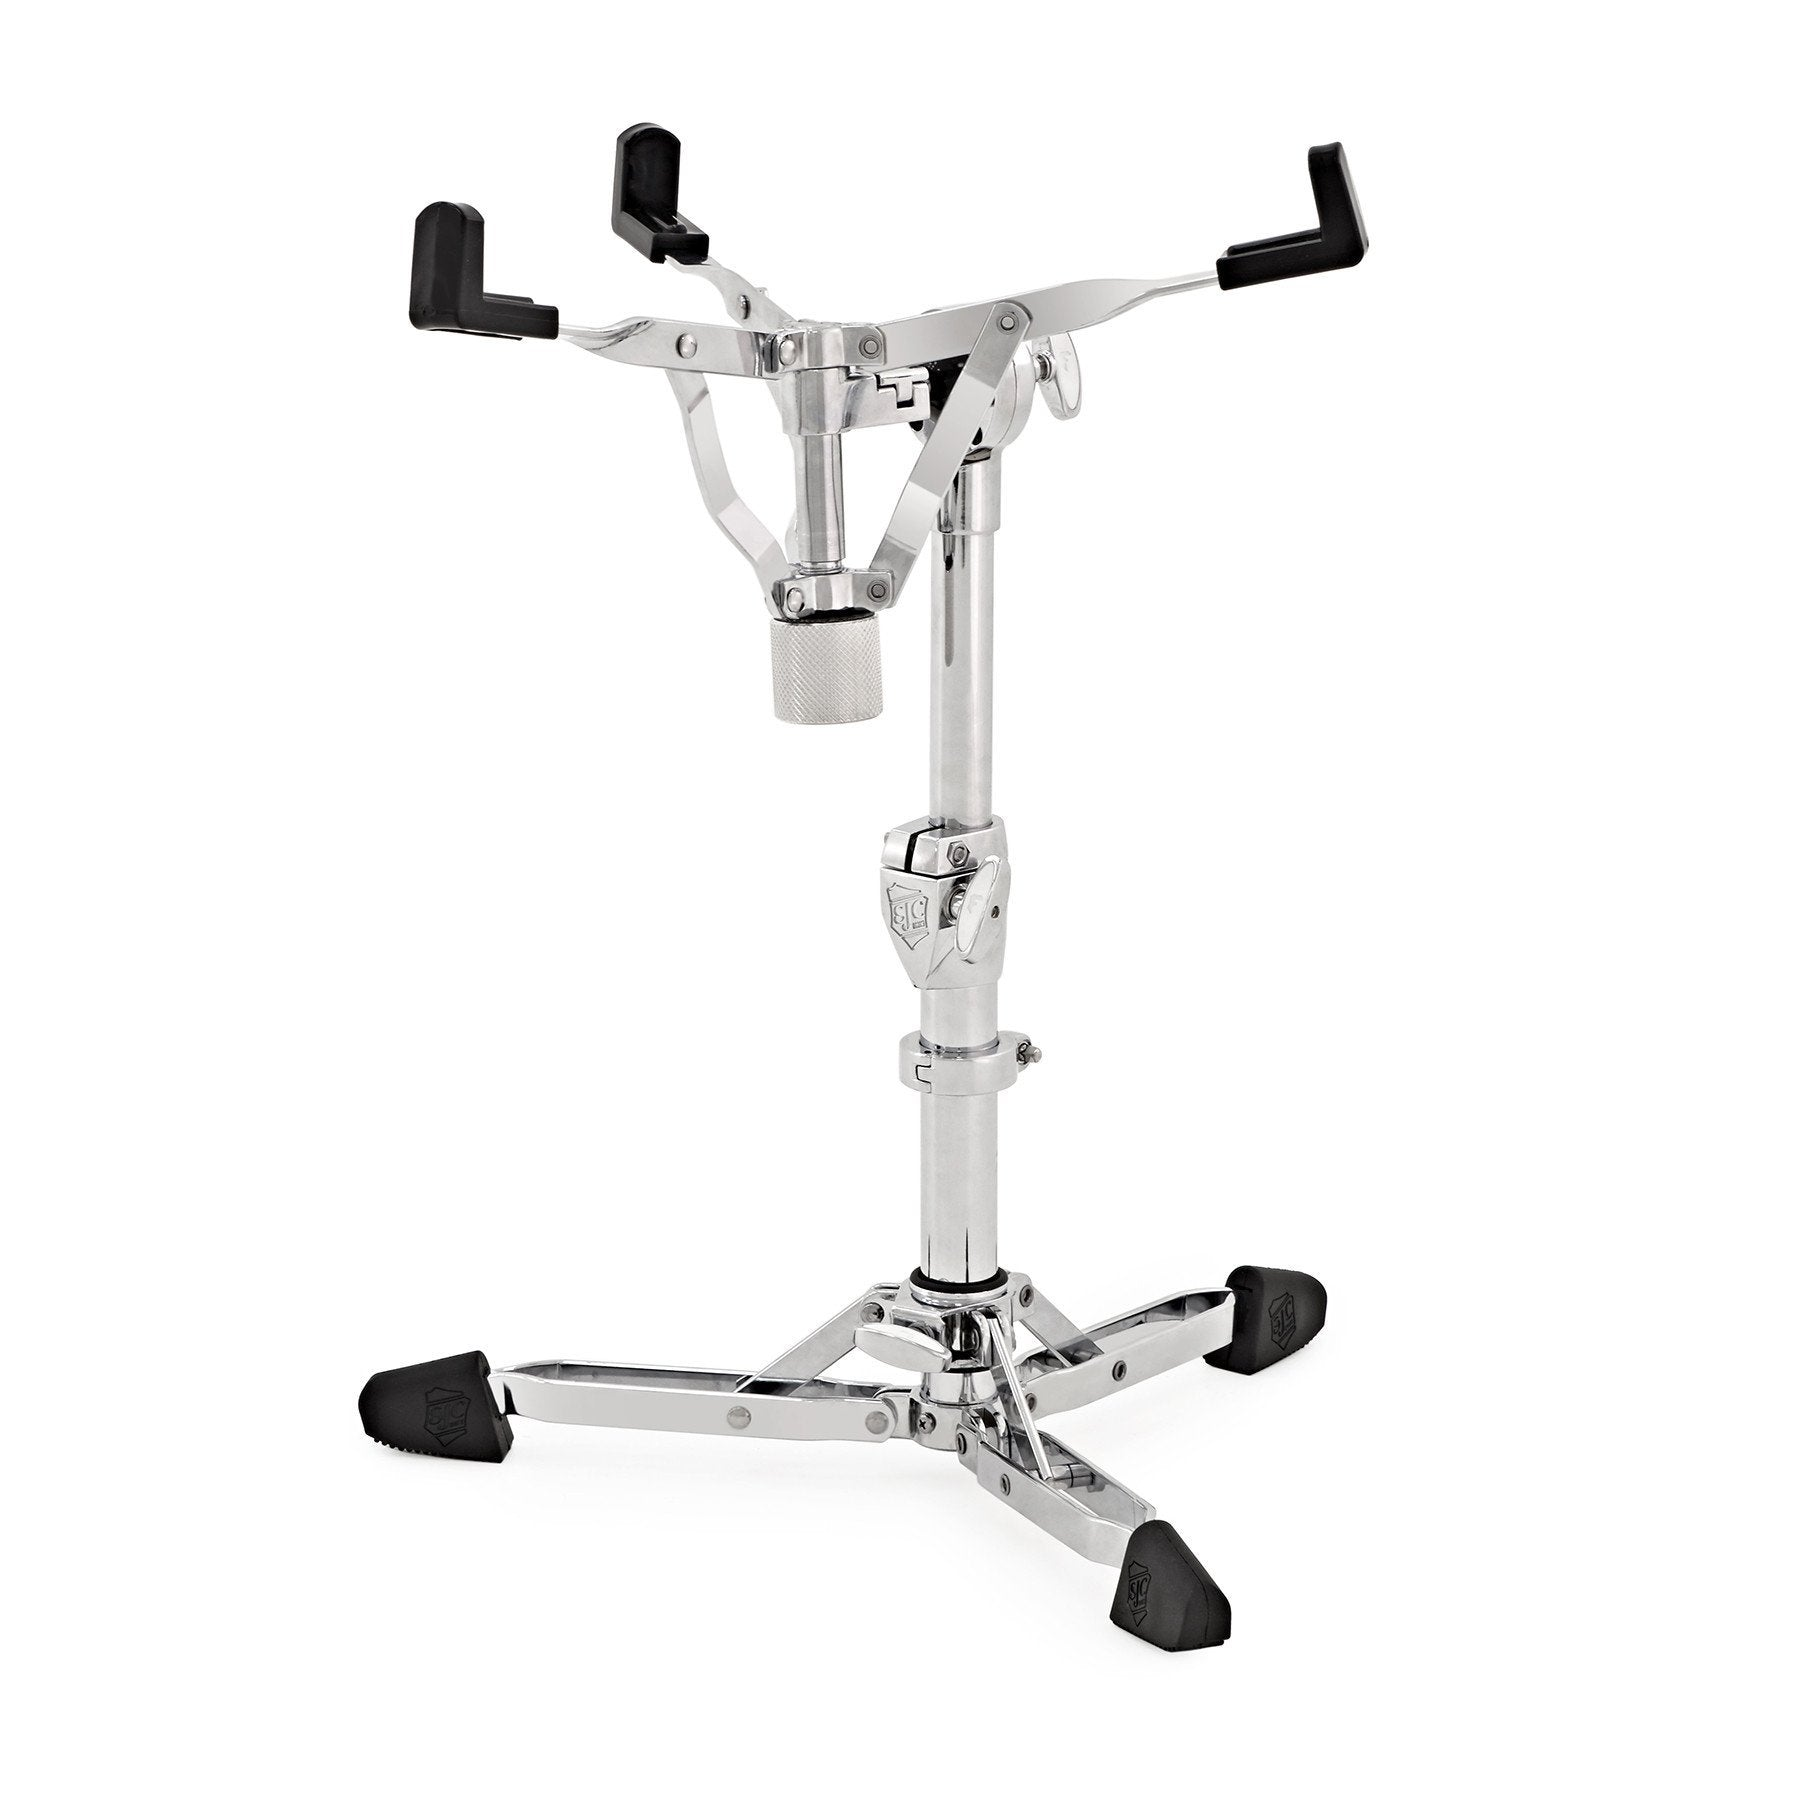 SJC Custom Drums Heavy Duty Double Braced Foundation Hardware Flatline Snare Stand